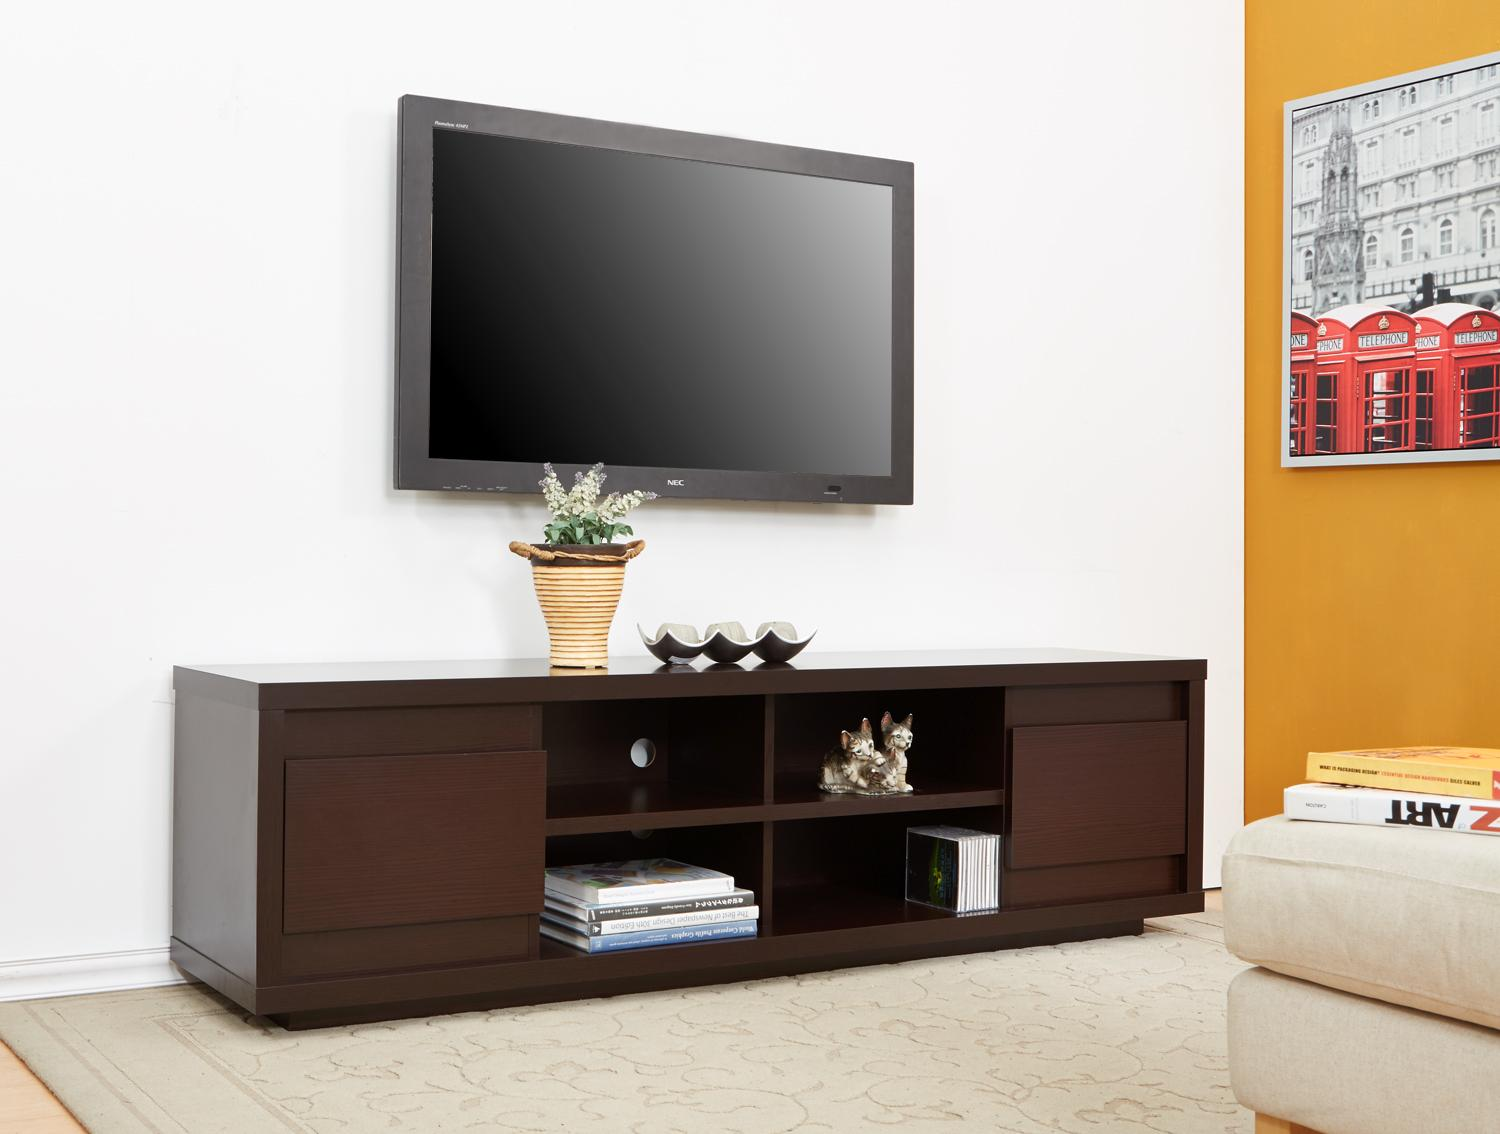 Furniture of america enitial lab kirry multi storage tv for Furniture of america enitial lab